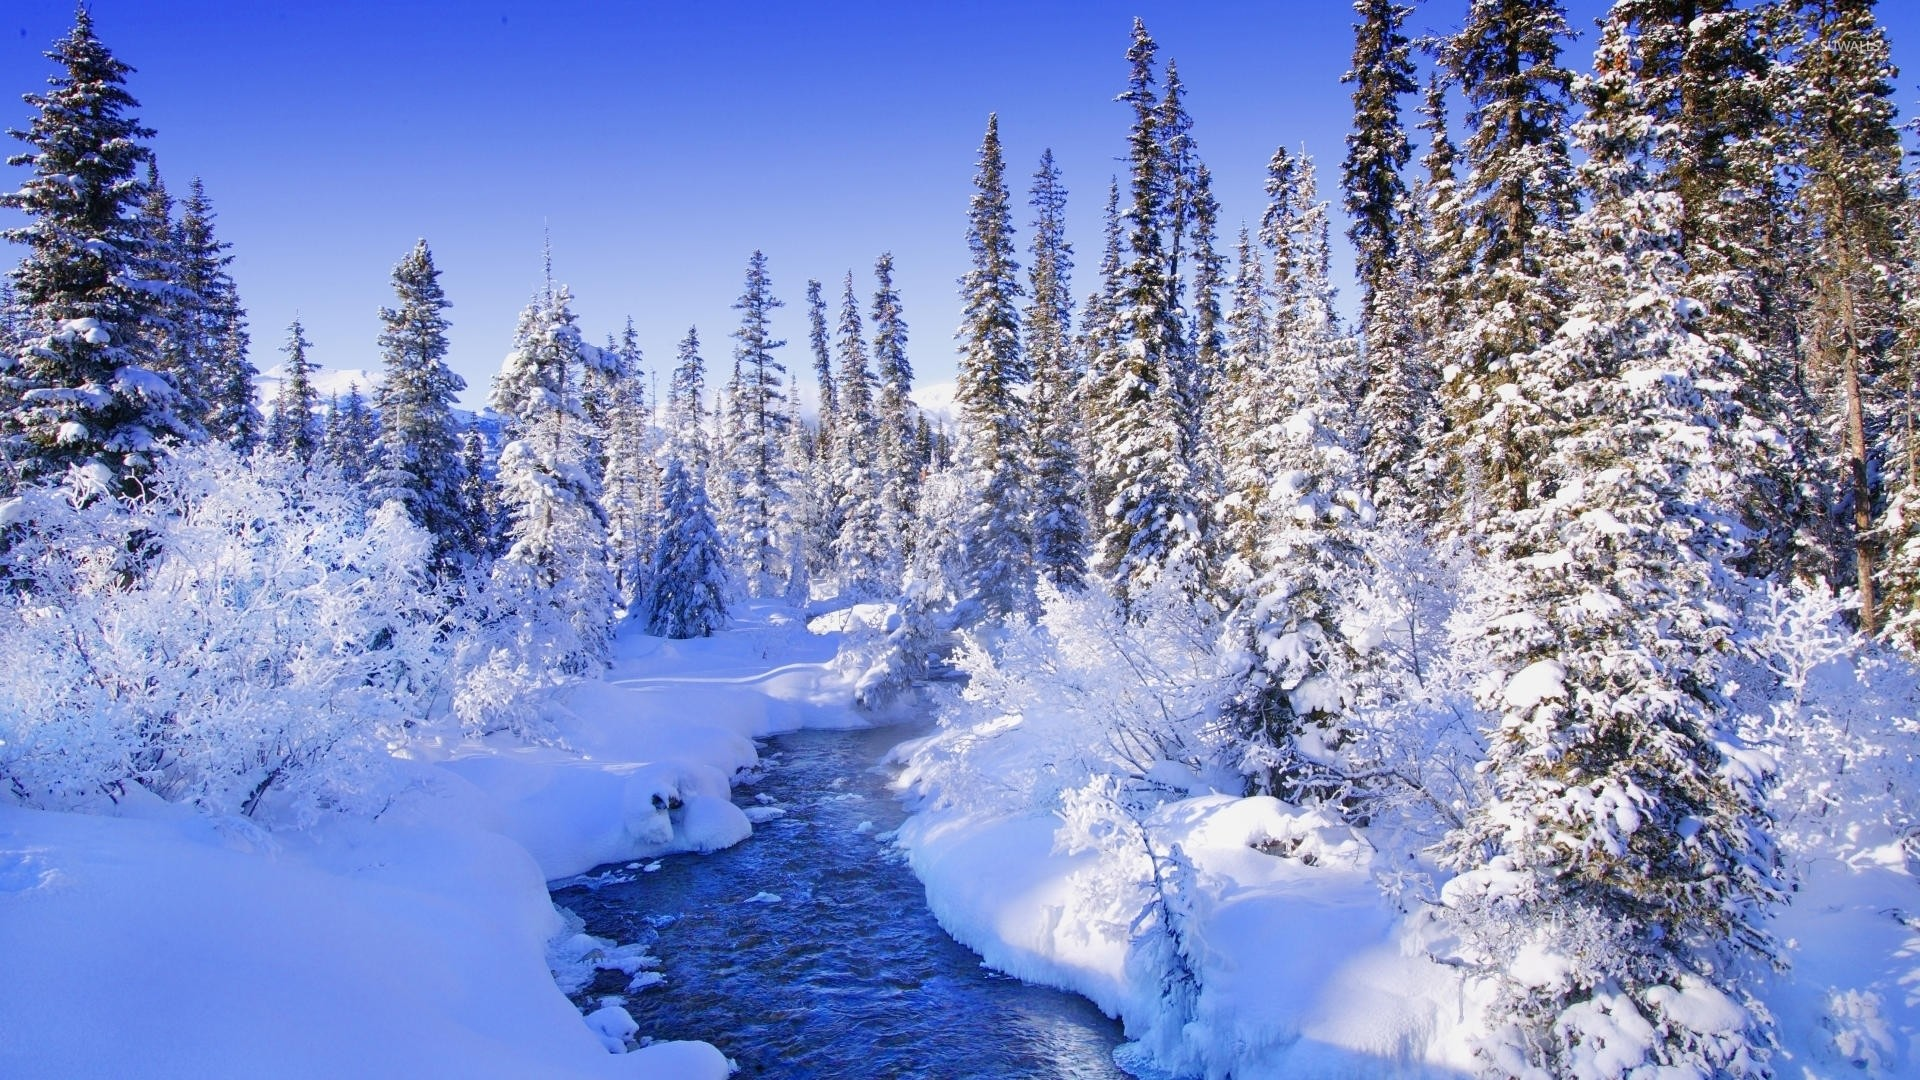 1920x1080 Steamy river by the snowy forest wallpaper - Nature wallpapers .